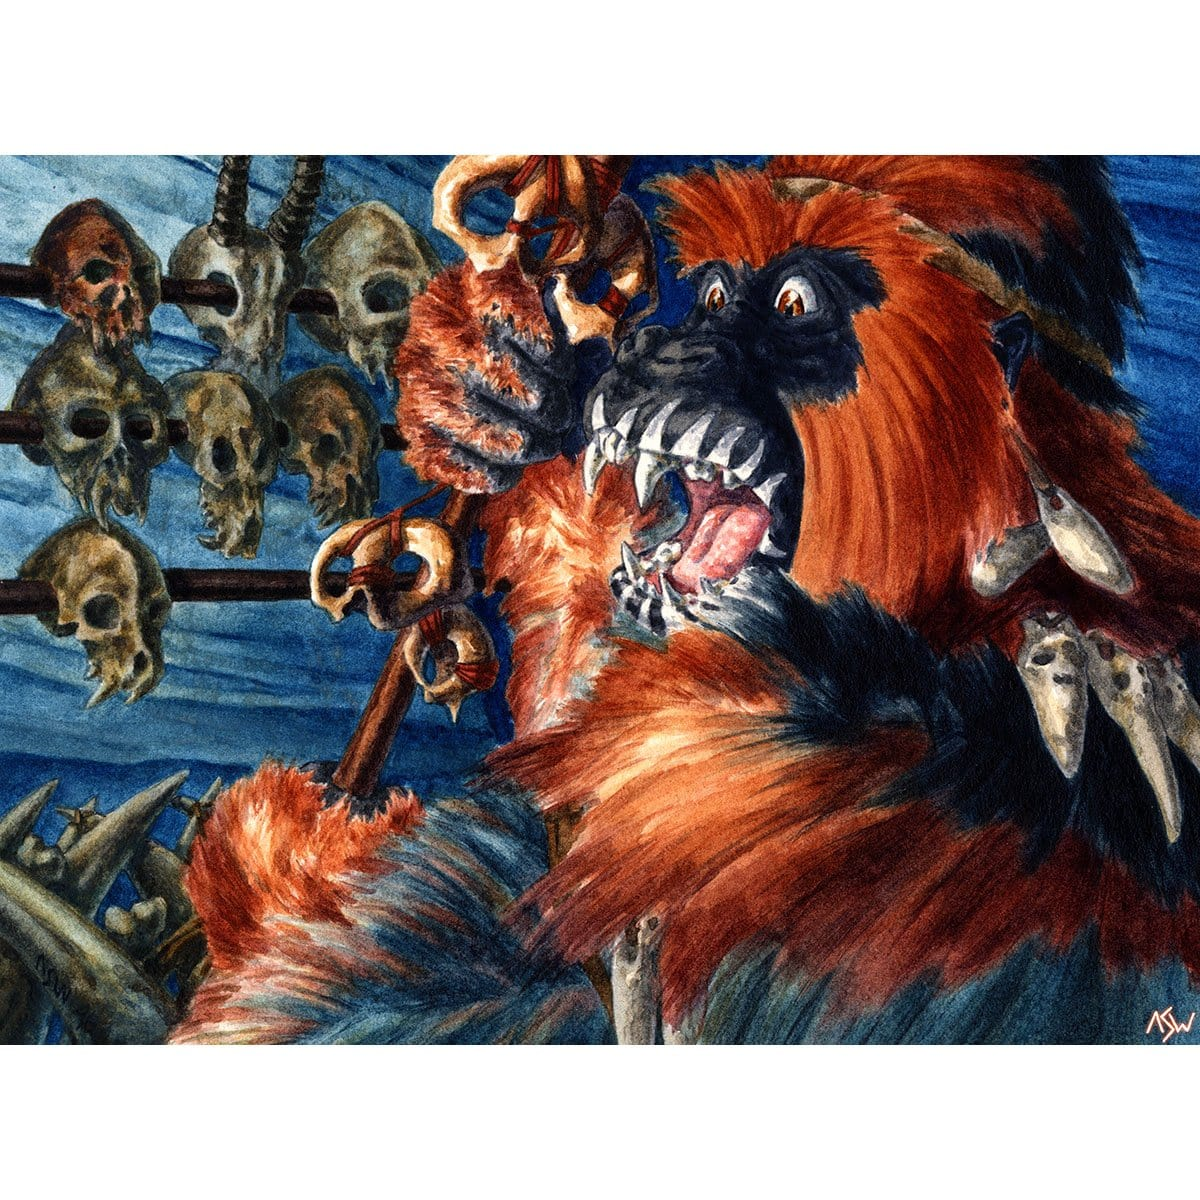 Gorilla Shaman Print - Print - Original Magic Art - Accessories for Magic the Gathering and other card games